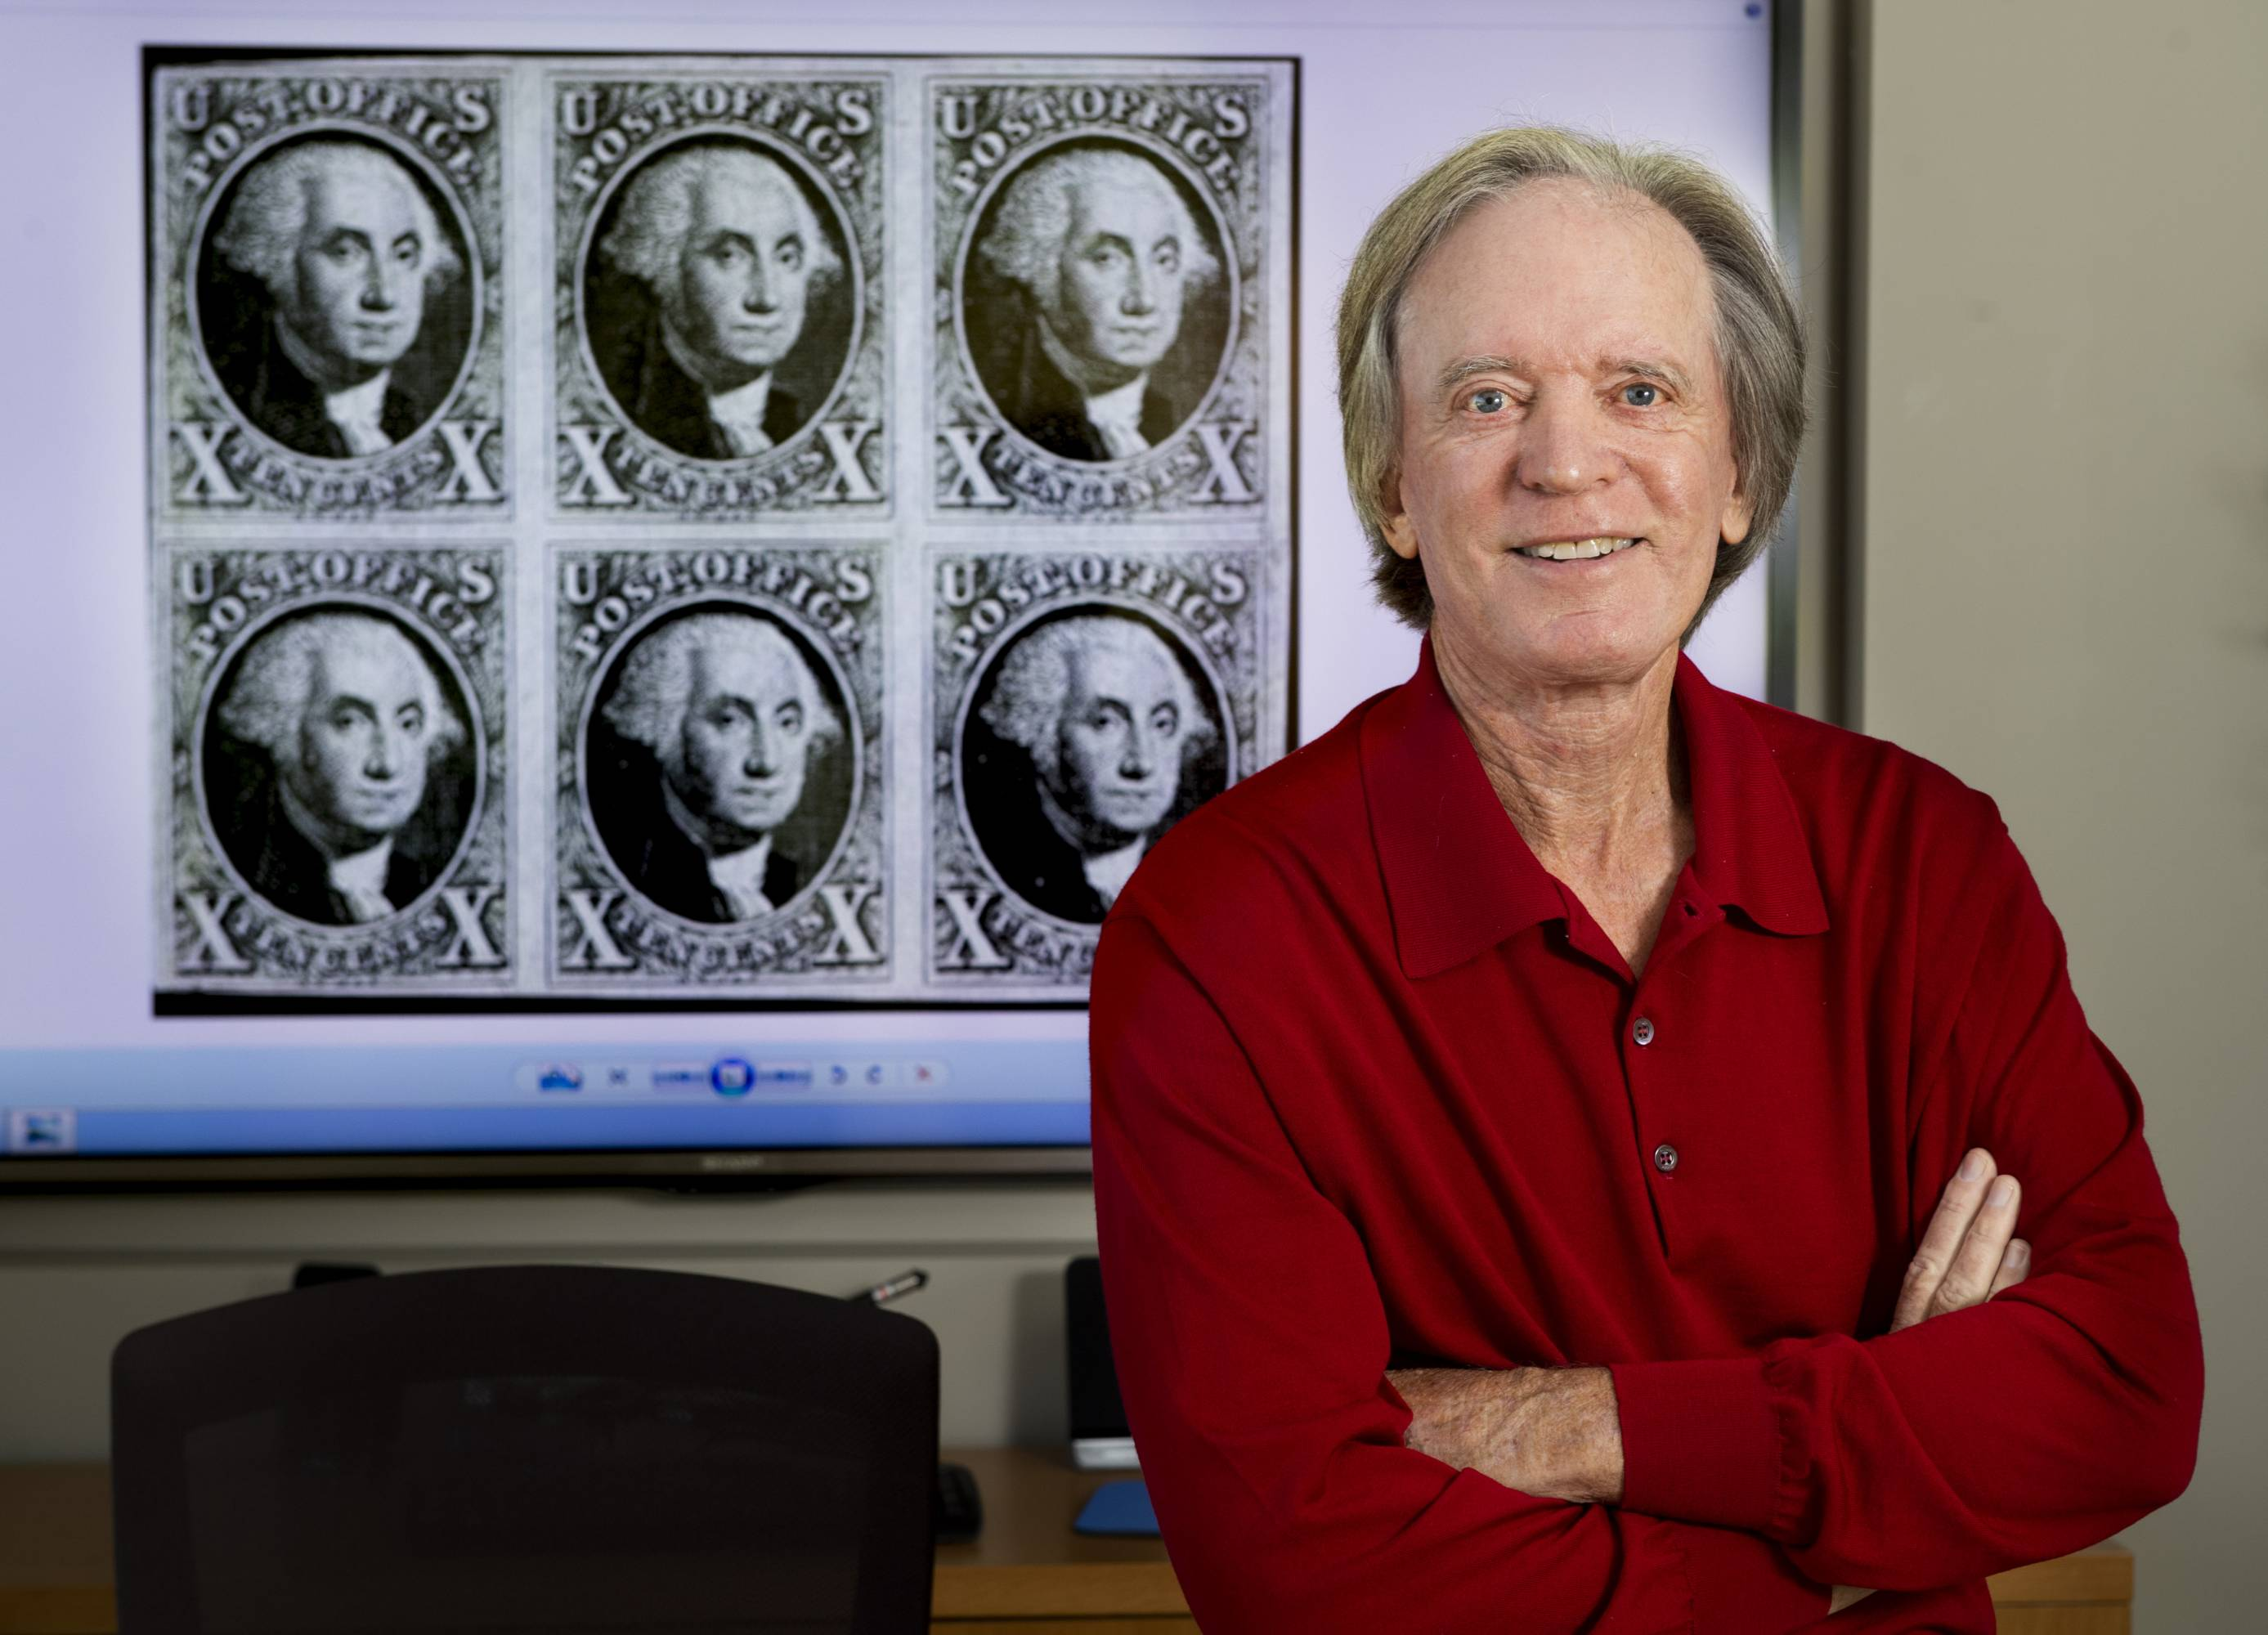 Investment manager Bill Gross